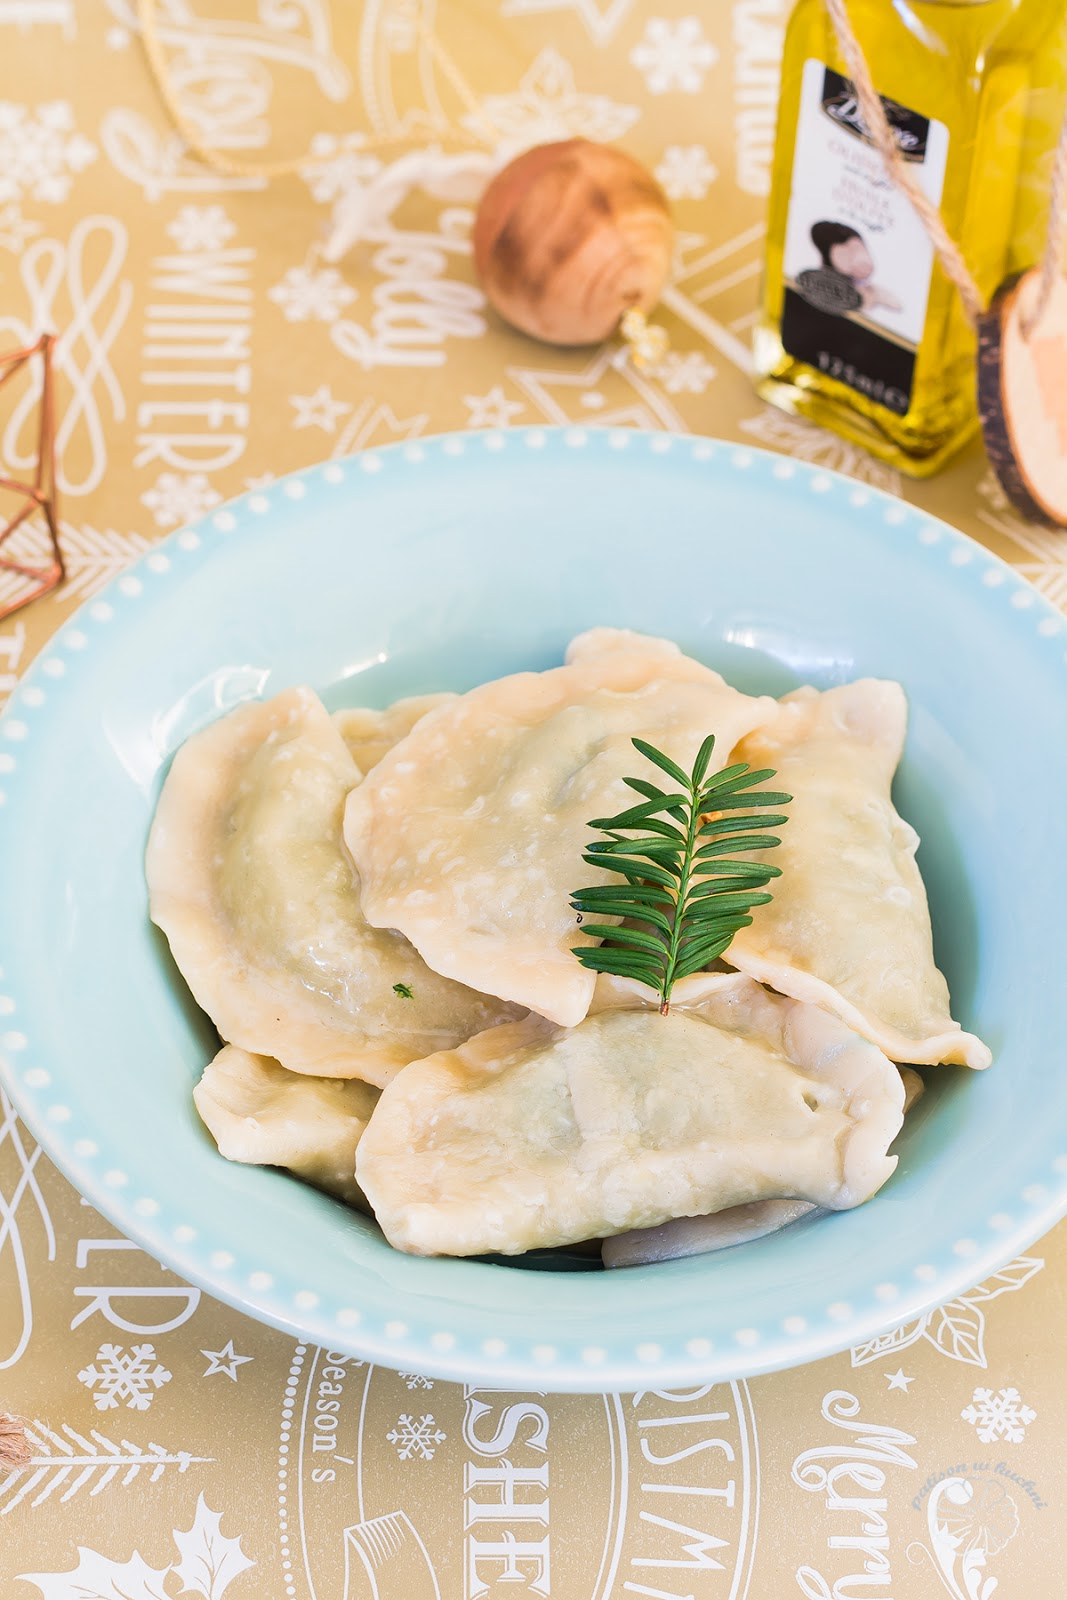 Dumplings with spinach.